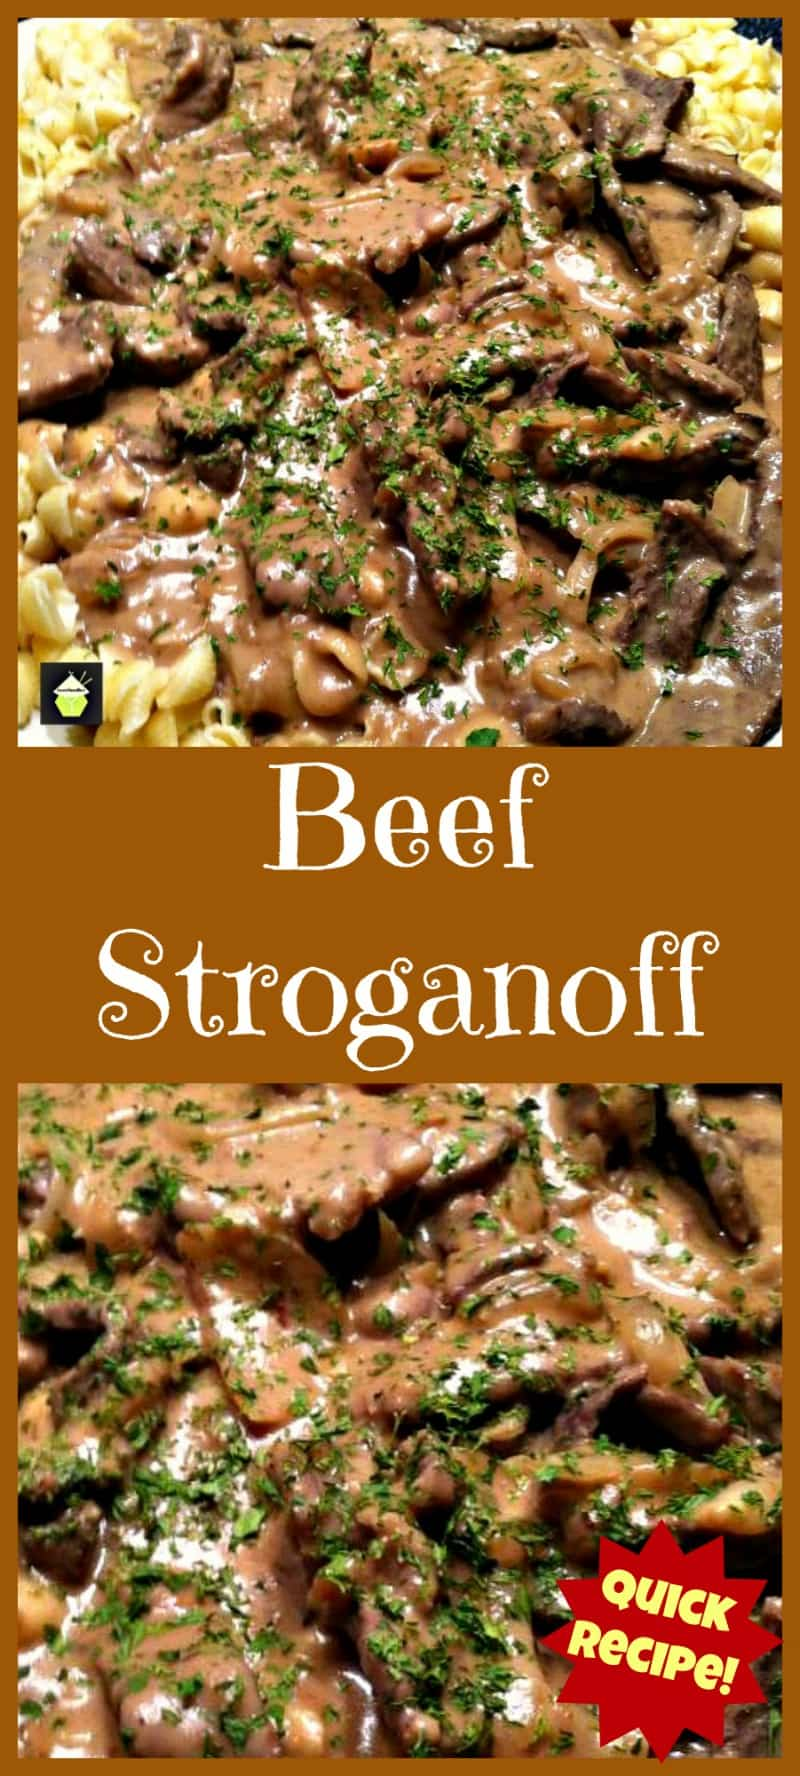 Beef Stroganoff. Quick and Easy dinner with a great sauce! | Lovefoodies.com